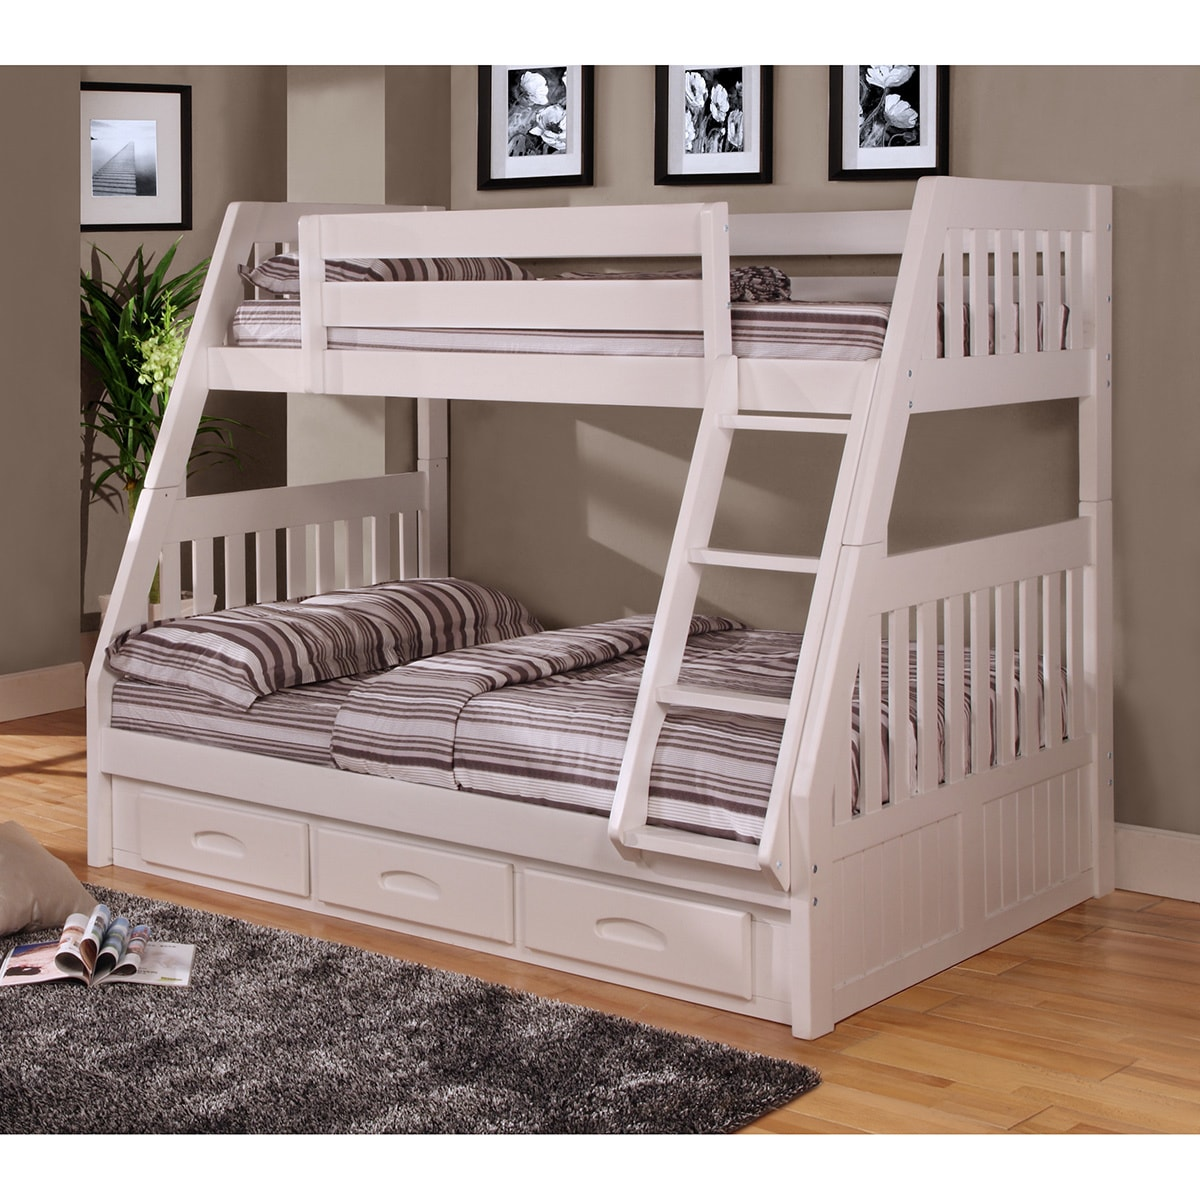 Shop Twin Over Full Bunk Bed With 3 Drawers Underneath And Bonus